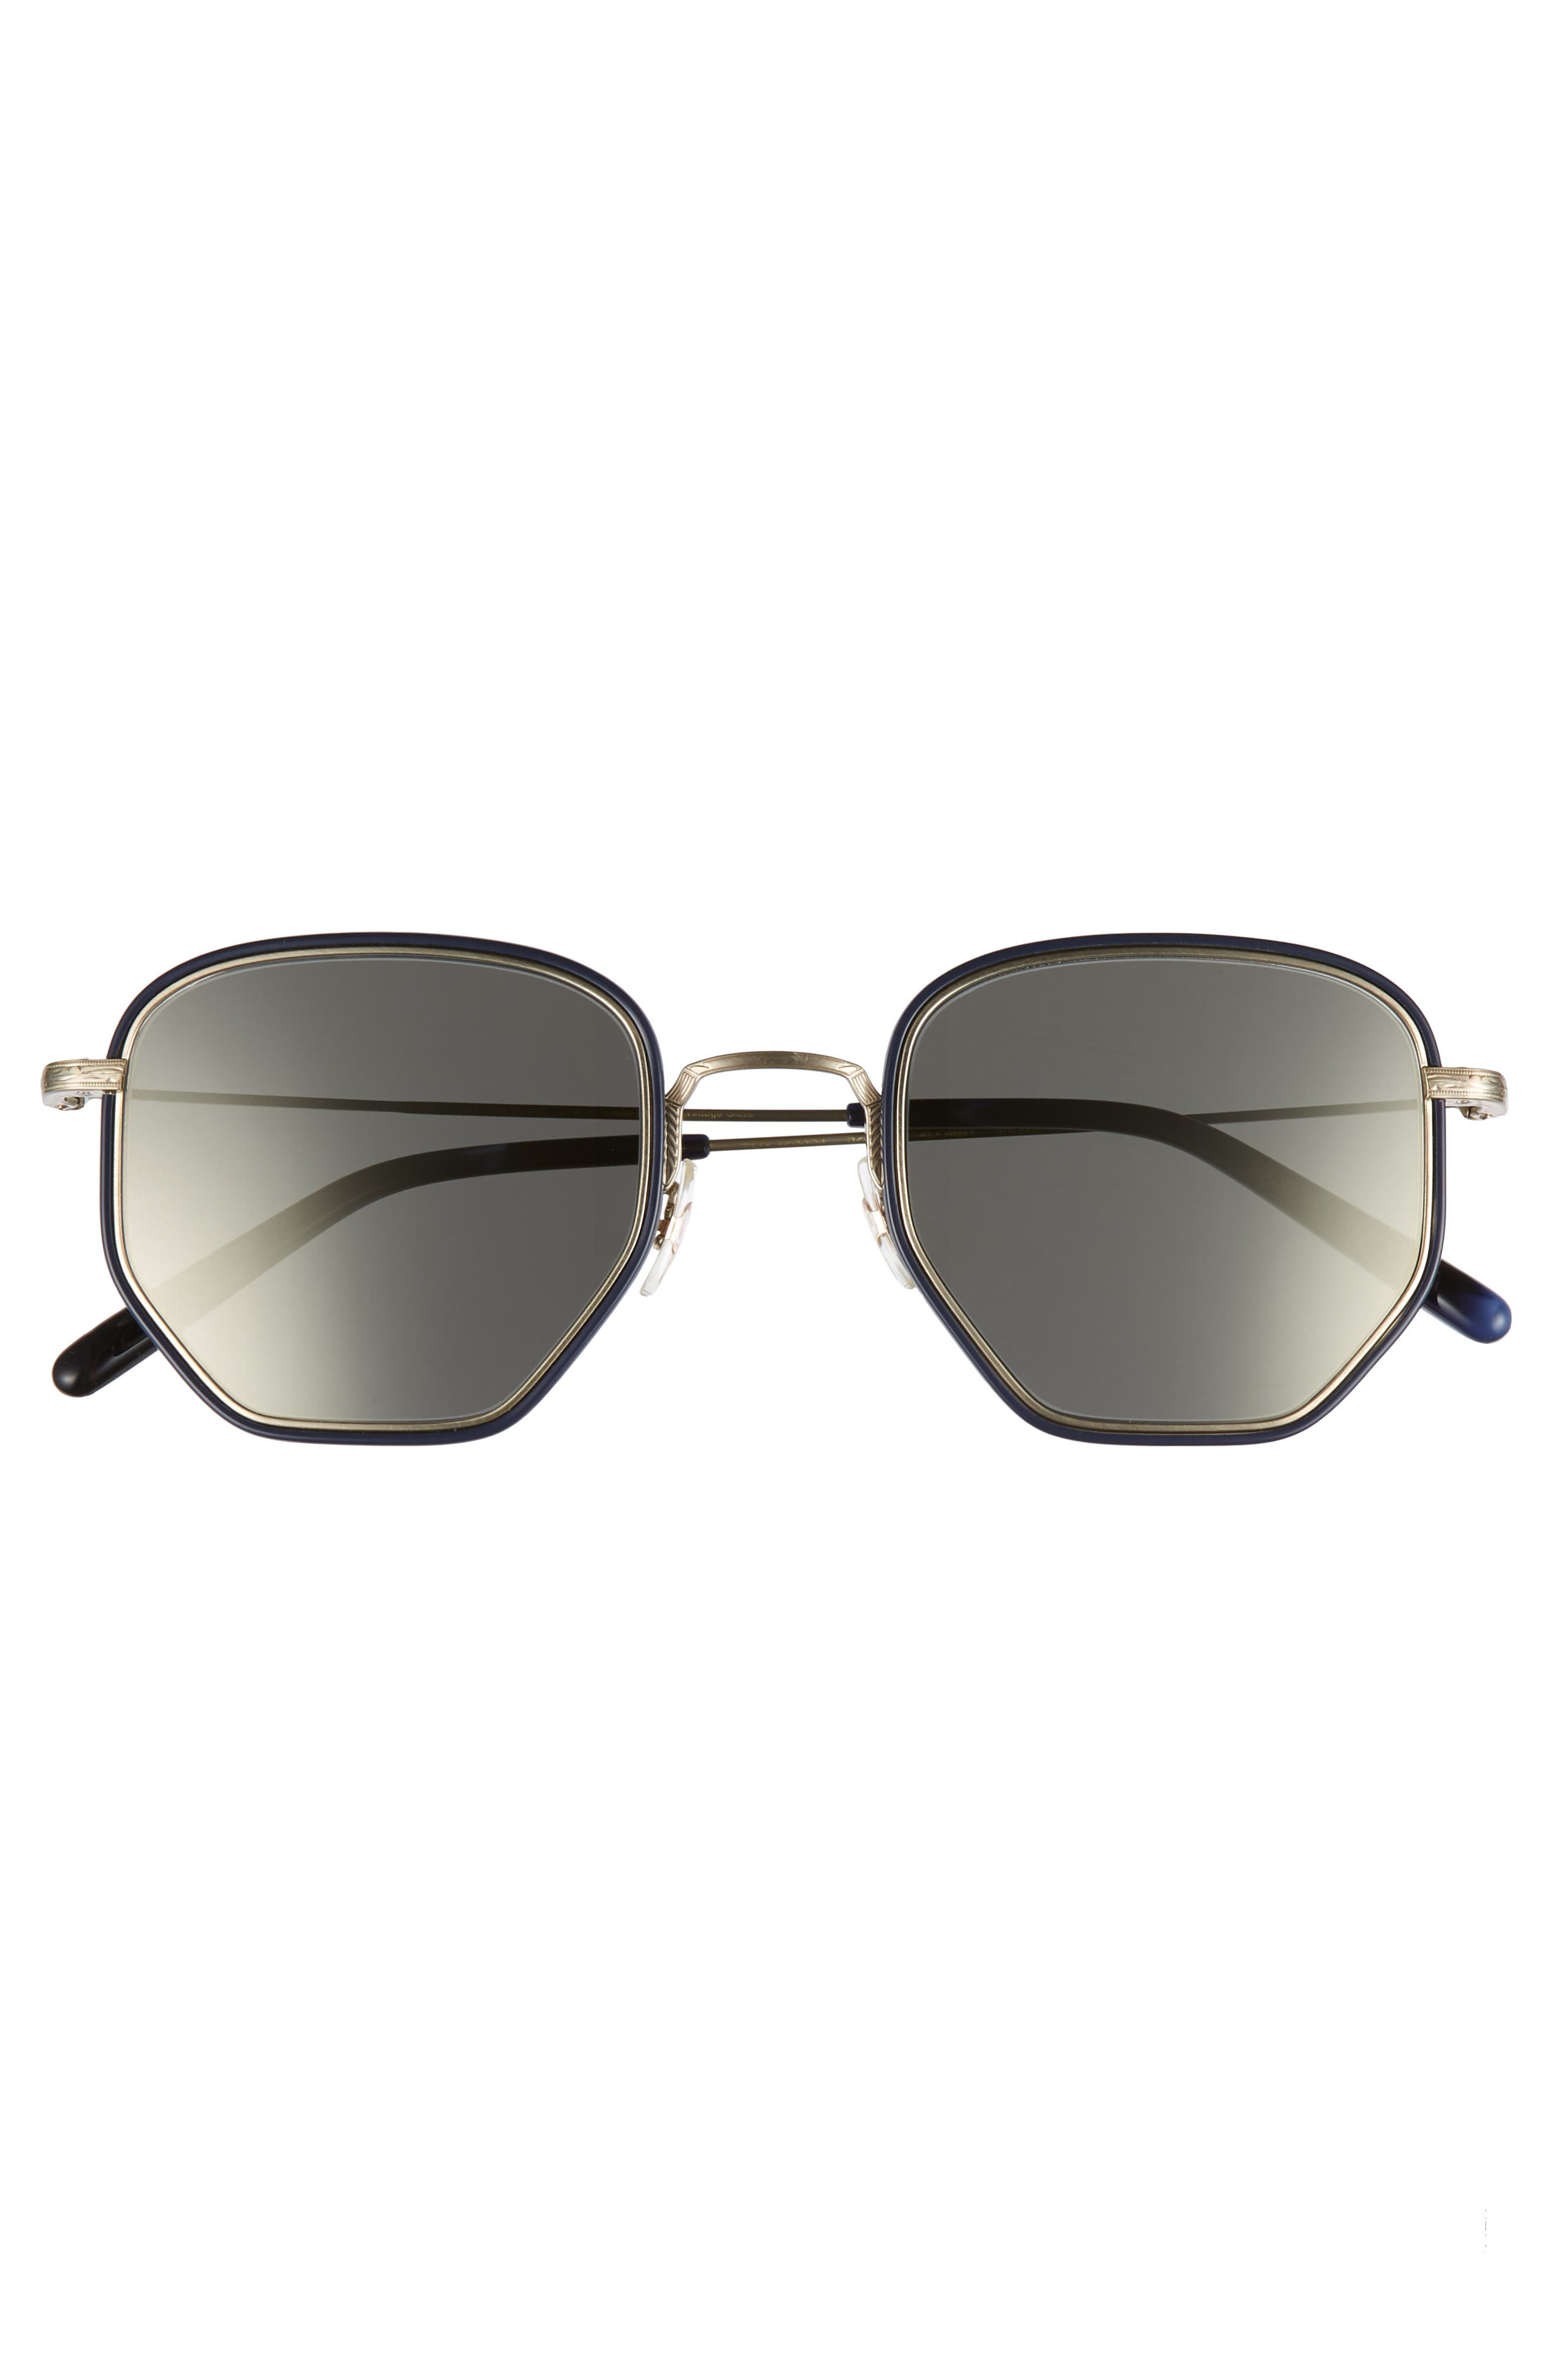 Alland 50mm Sunglasses,                             Alternate thumbnail 2, color,                             Navy/ Brushed